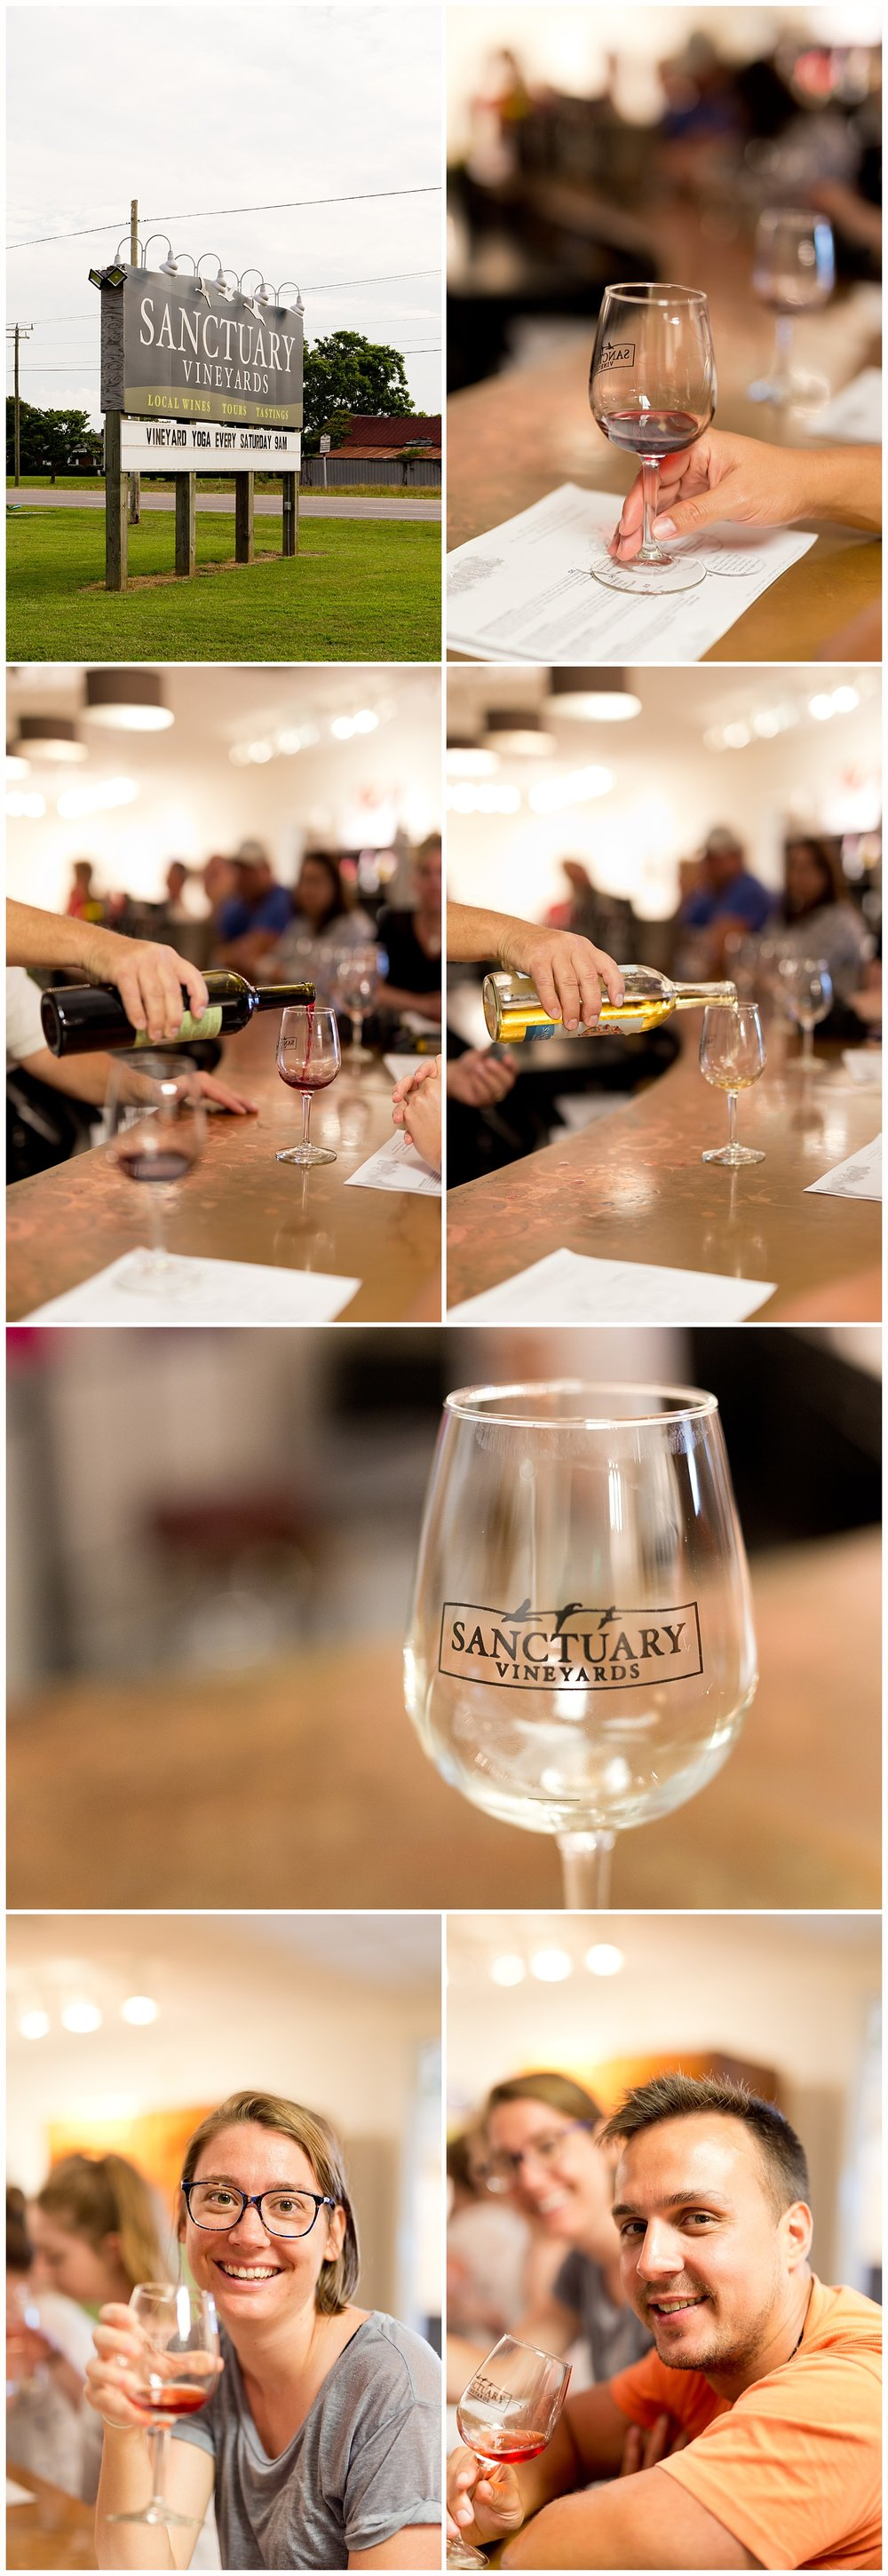 free wine tasting at Sanctuary Vineyards in Jarvisburg, North Carolina